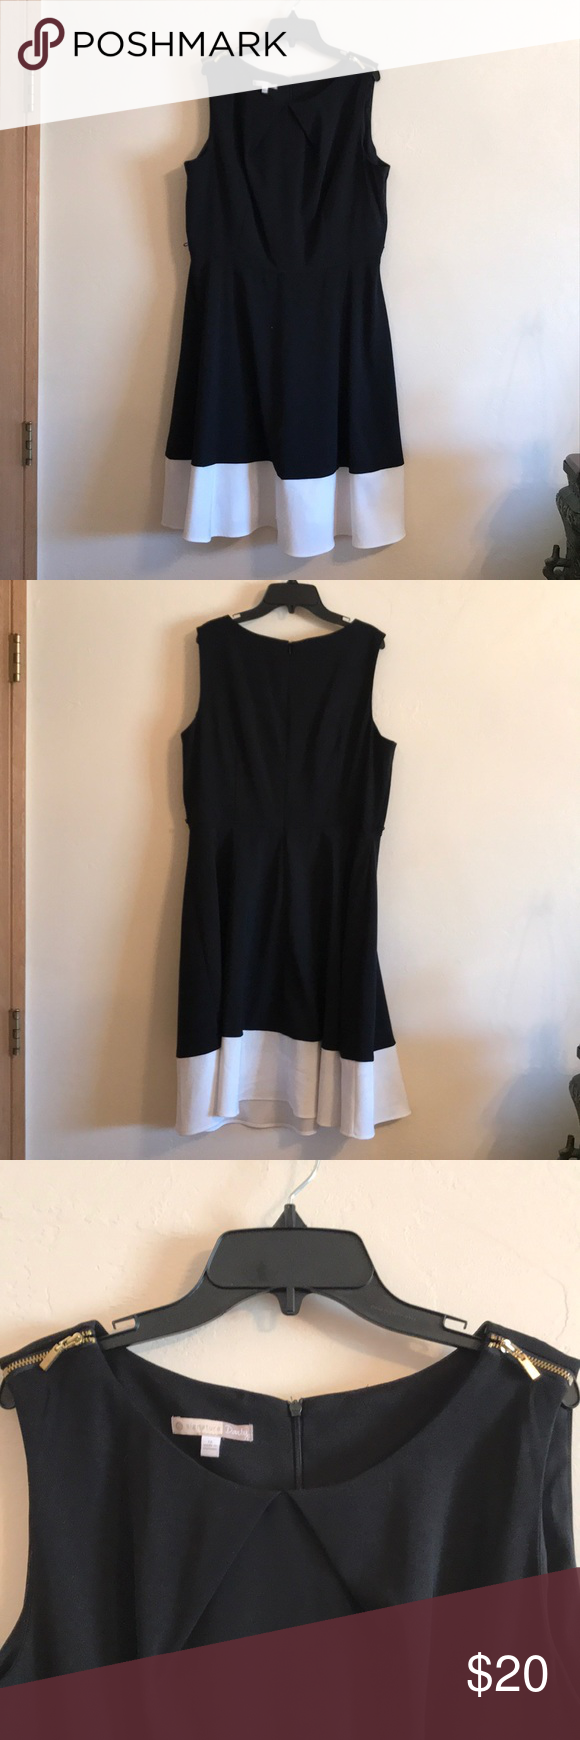 Signature Darby Dress Solid Black Dress With White Trim At The Bottom And Gold Zippers On The Shoulders T Business Casual Outfits Clothes Design Casual Outfits [ 1740 x 580 Pixel ]